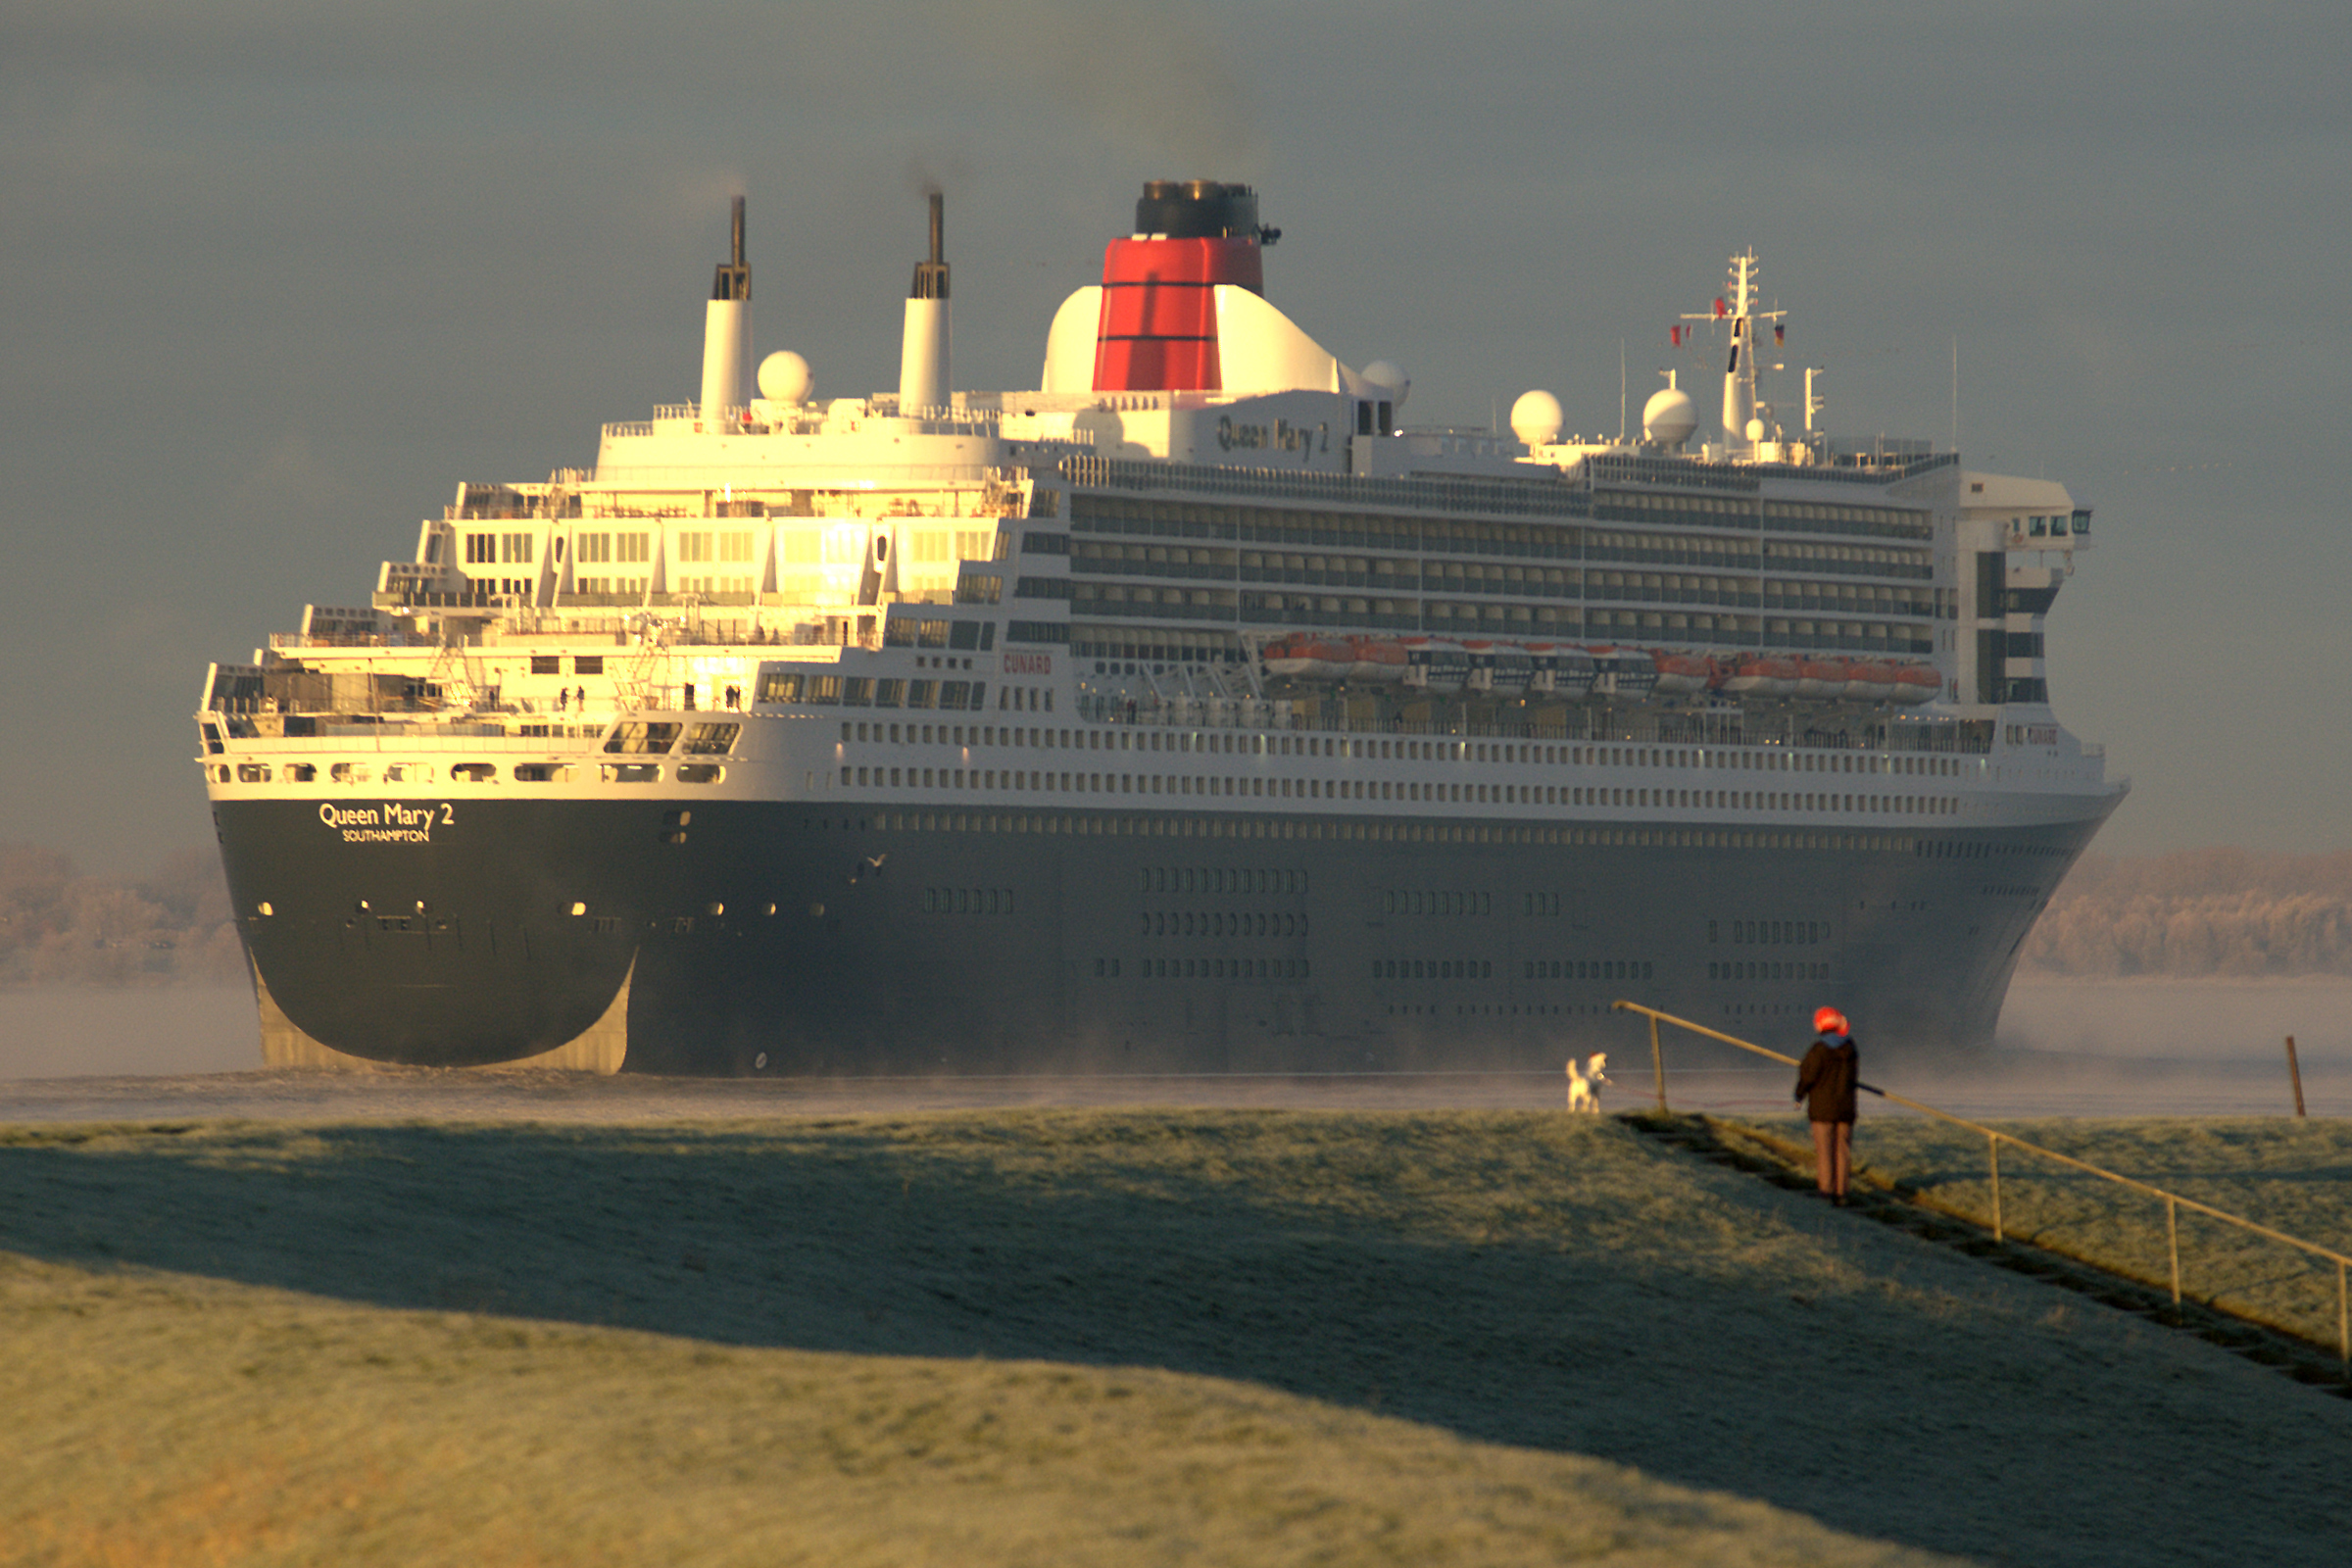 Queen Mary 2 - Photo by Torsten Bolten via Wikimedia Commons - crystal cruises - edie rodriguez